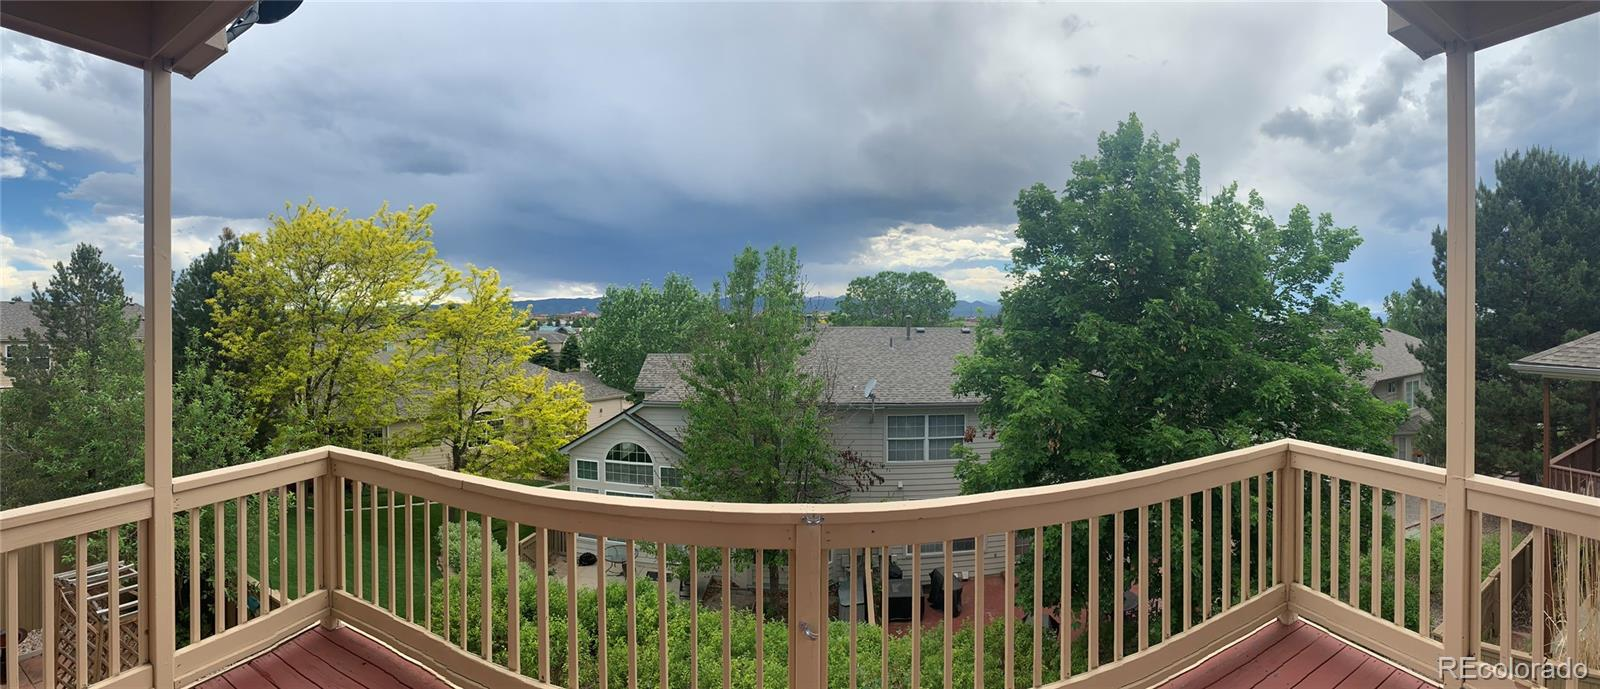 MLS# 5529694 - 16 - 9135 Woodland Drive, Highlands Ranch, CO 80126